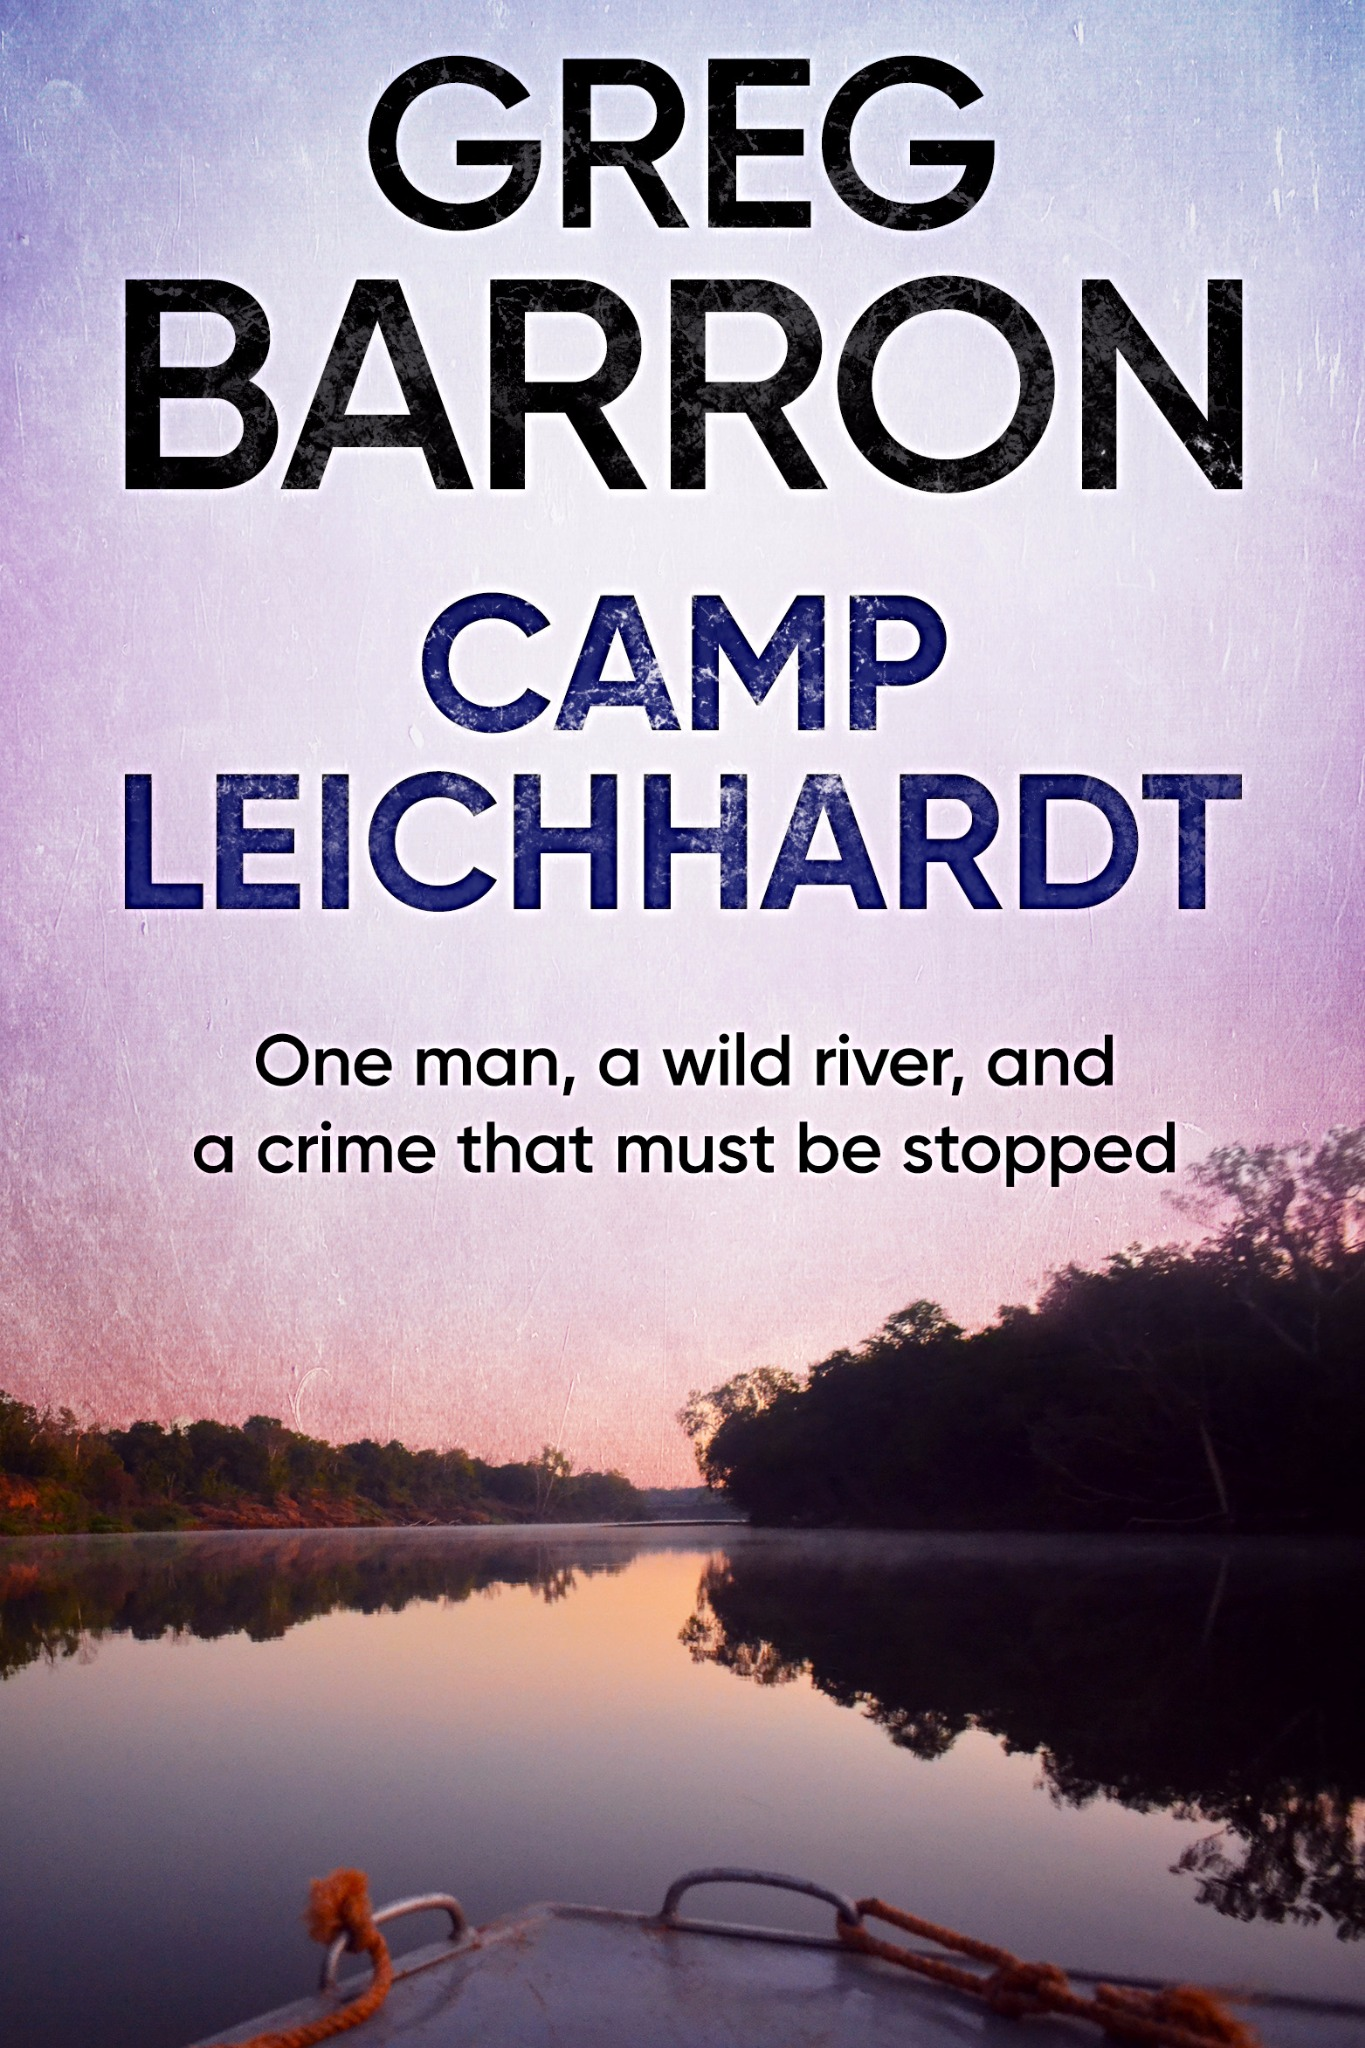 Camp Leichhardt by Greg Barron (Paperback)